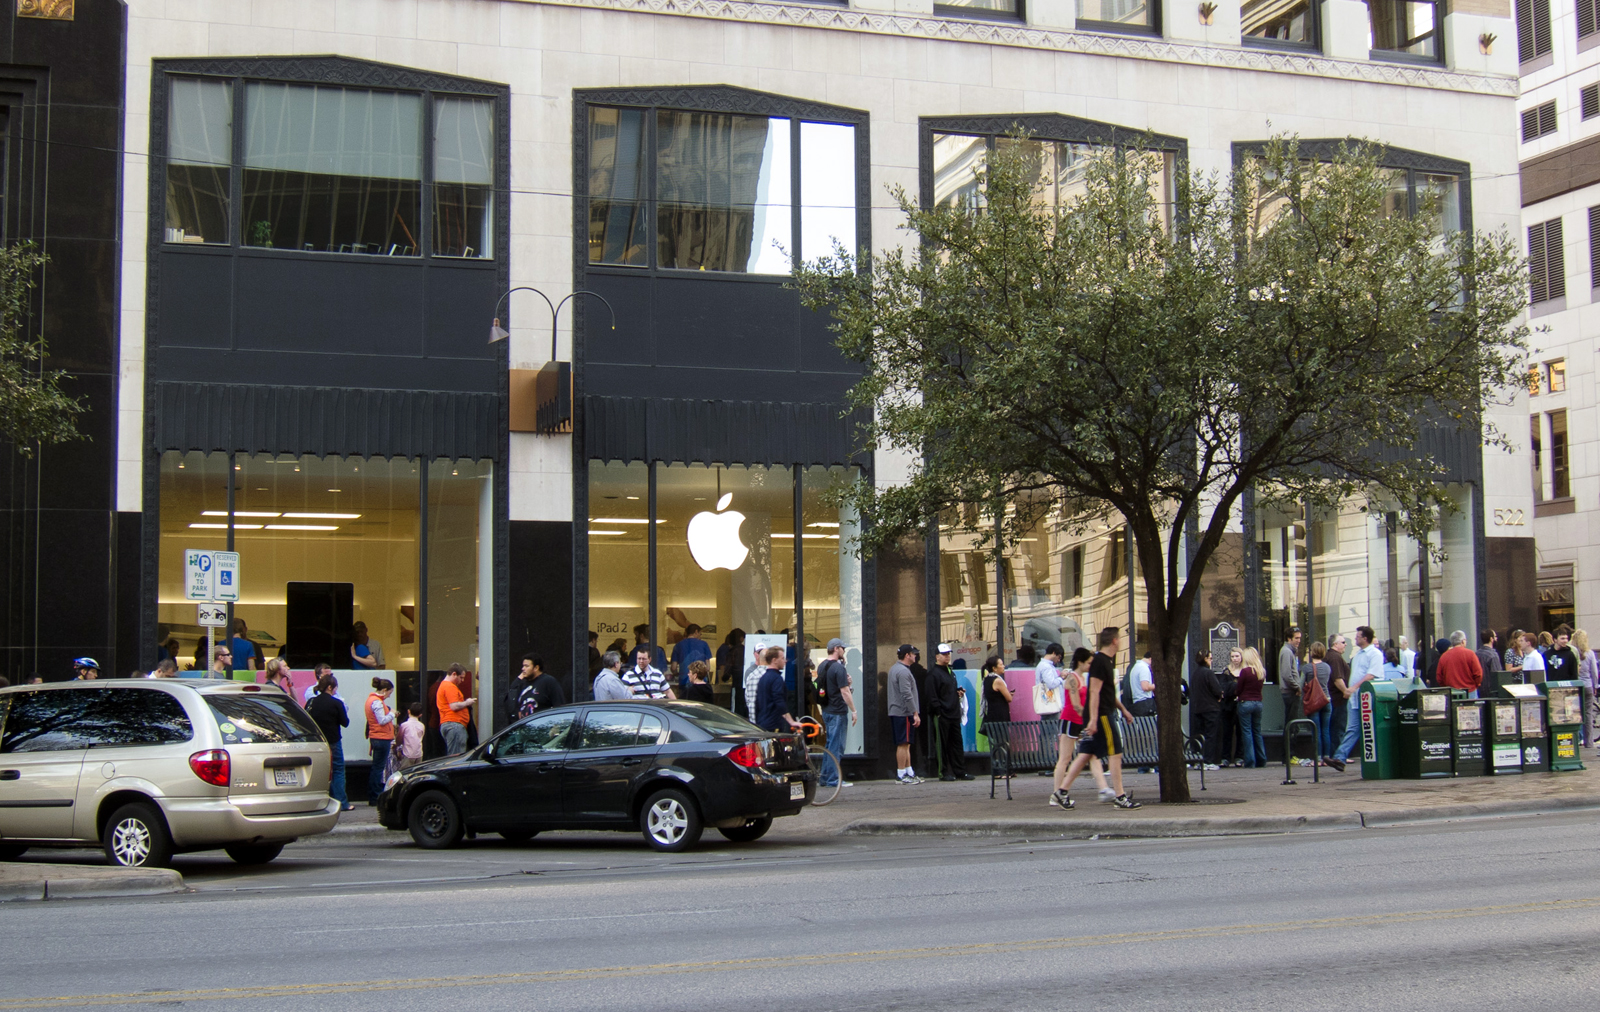 Pop-up store da Apple em Austin, para a SXSW 2011